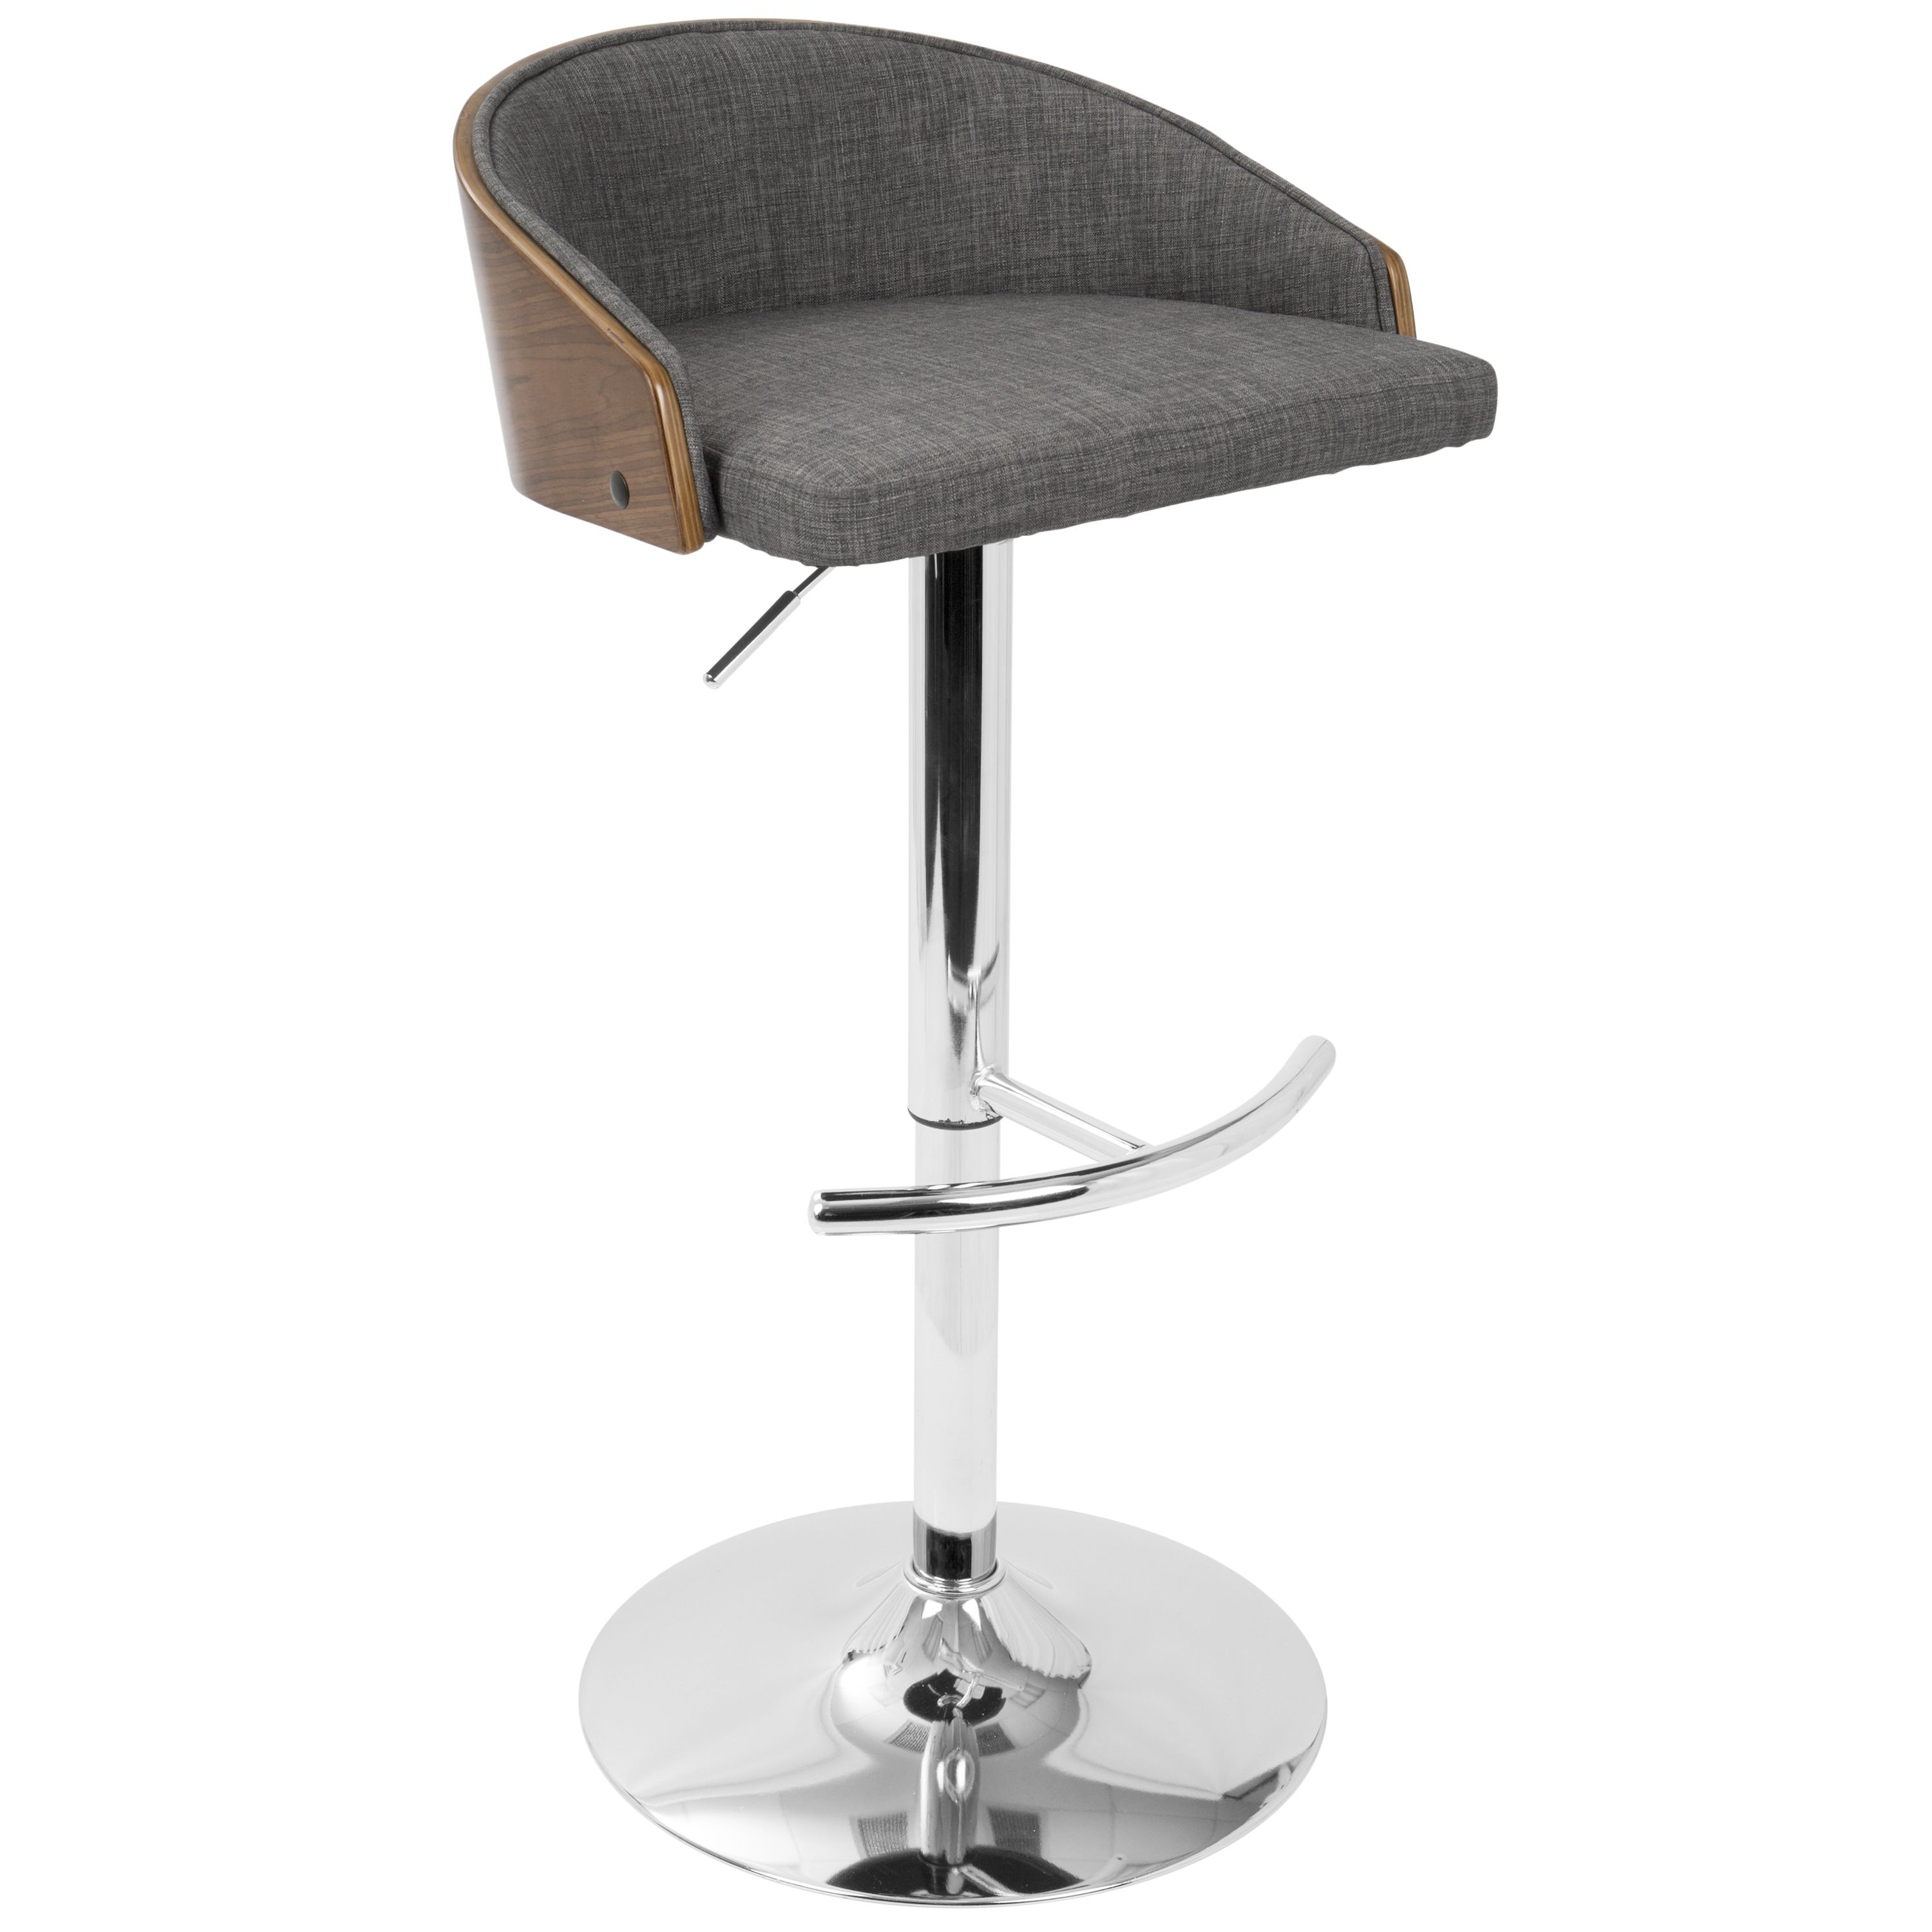 Magnificent Strick Bolton Blakey Wood And Chrome Mid Century Modern Ncnpc Chair Design For Home Ncnpcorg